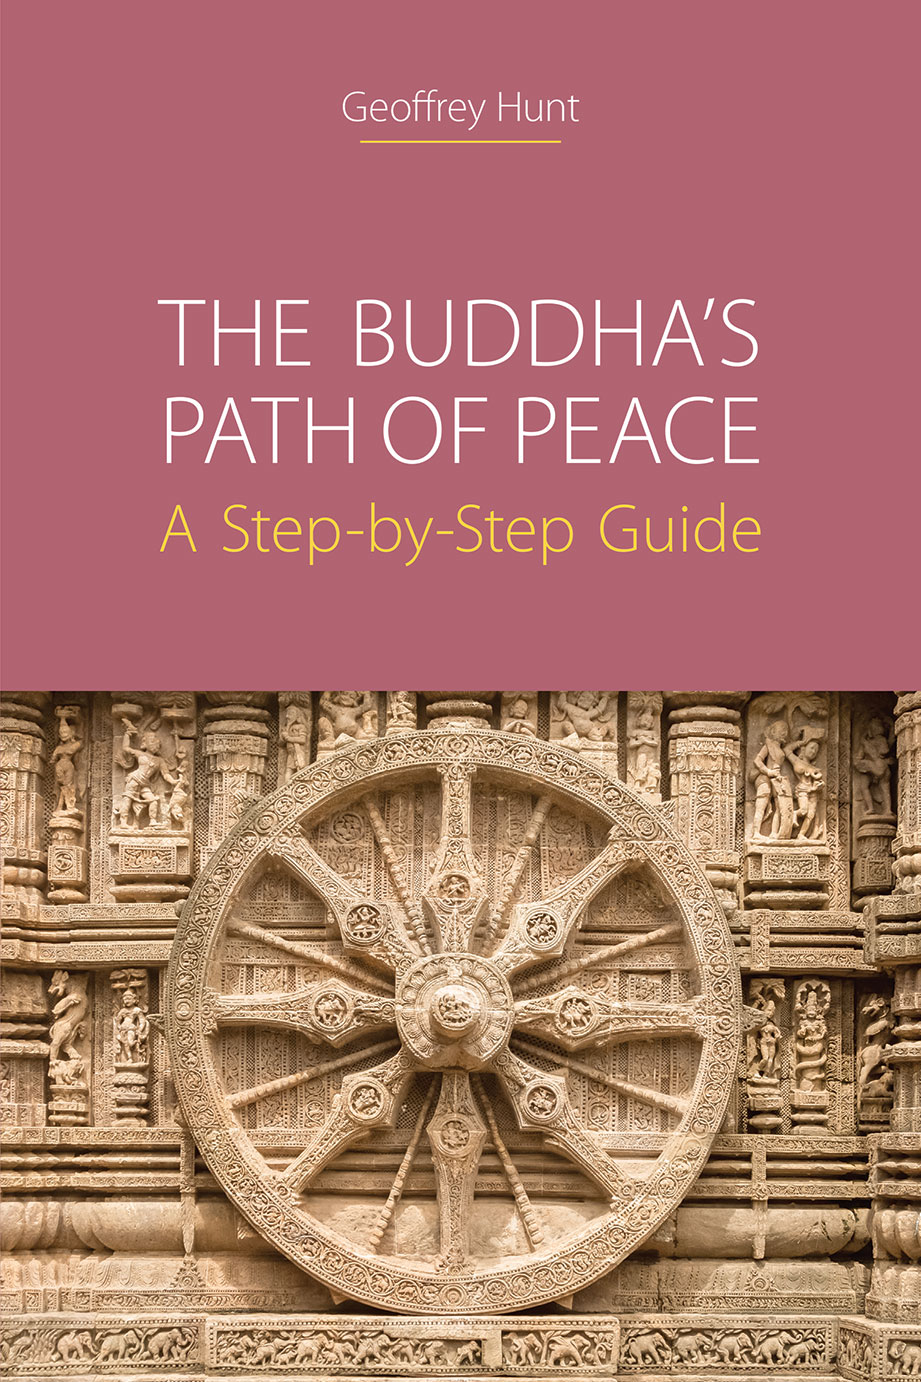 The Buddha's Path of Peace - A Step-by-Step Guide - Geoffrey Hunt